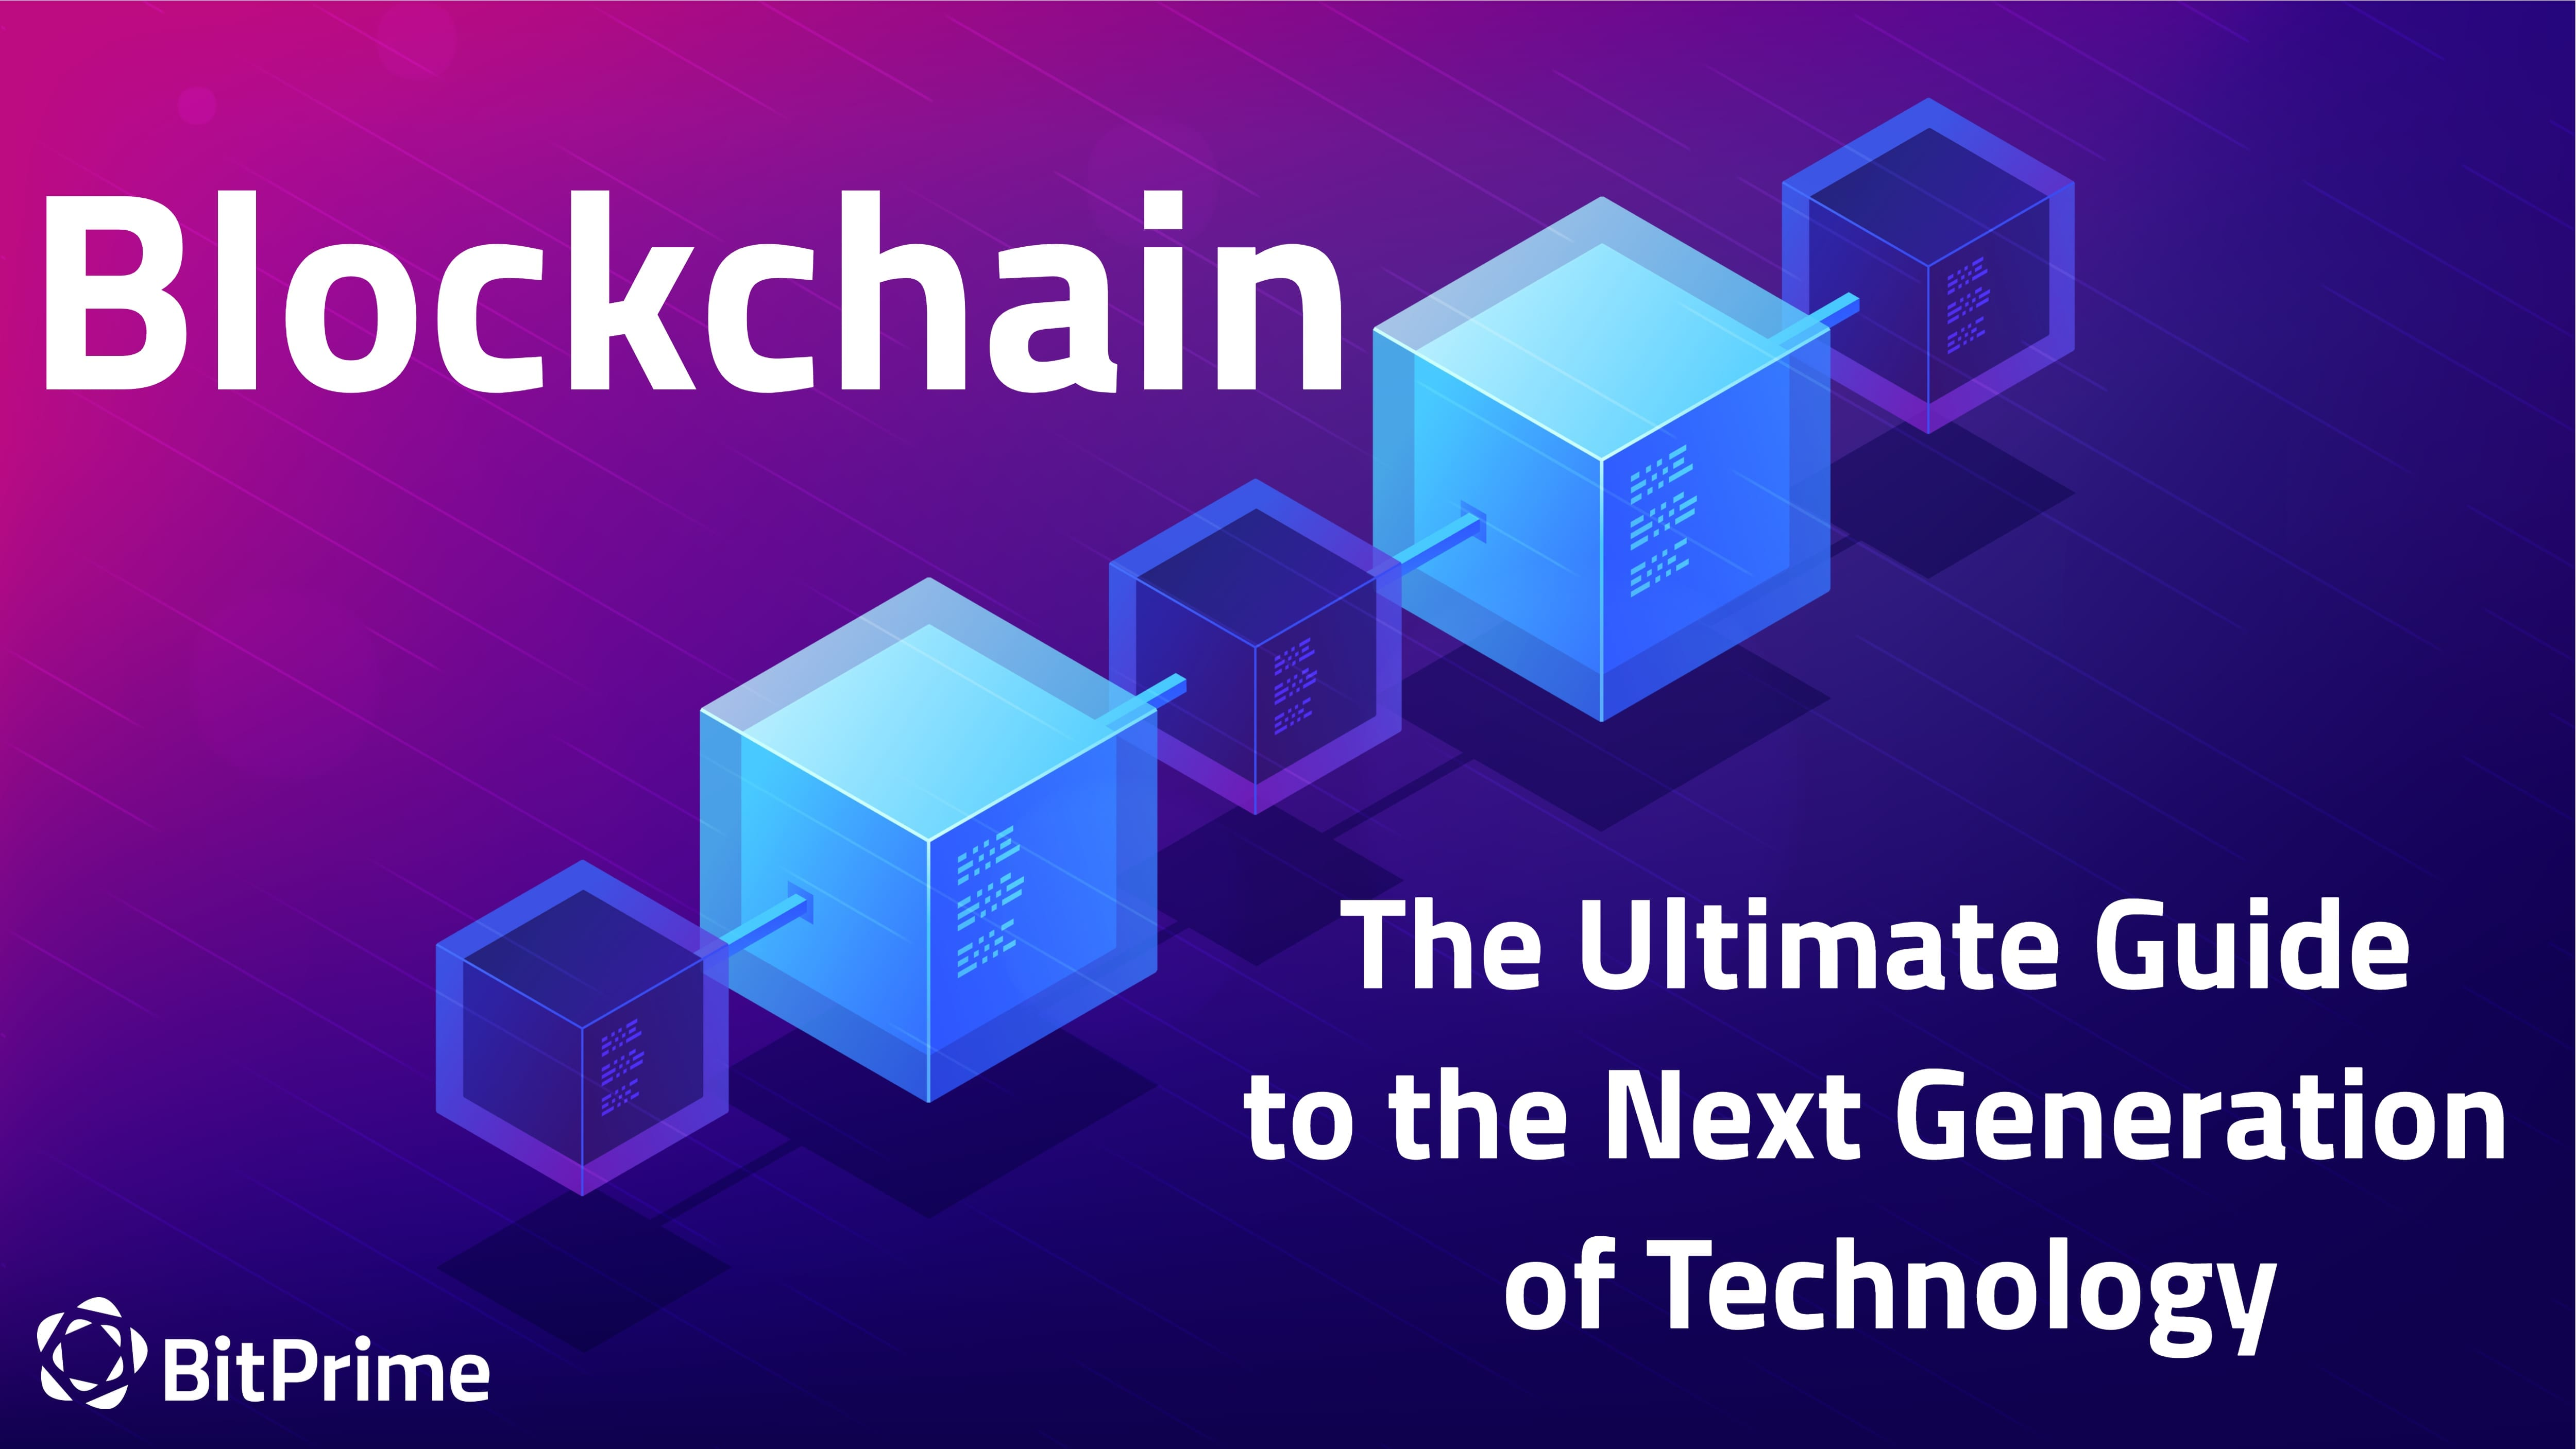 What is Blockchain: The Ultimate Guide to the Next Generation of Technology